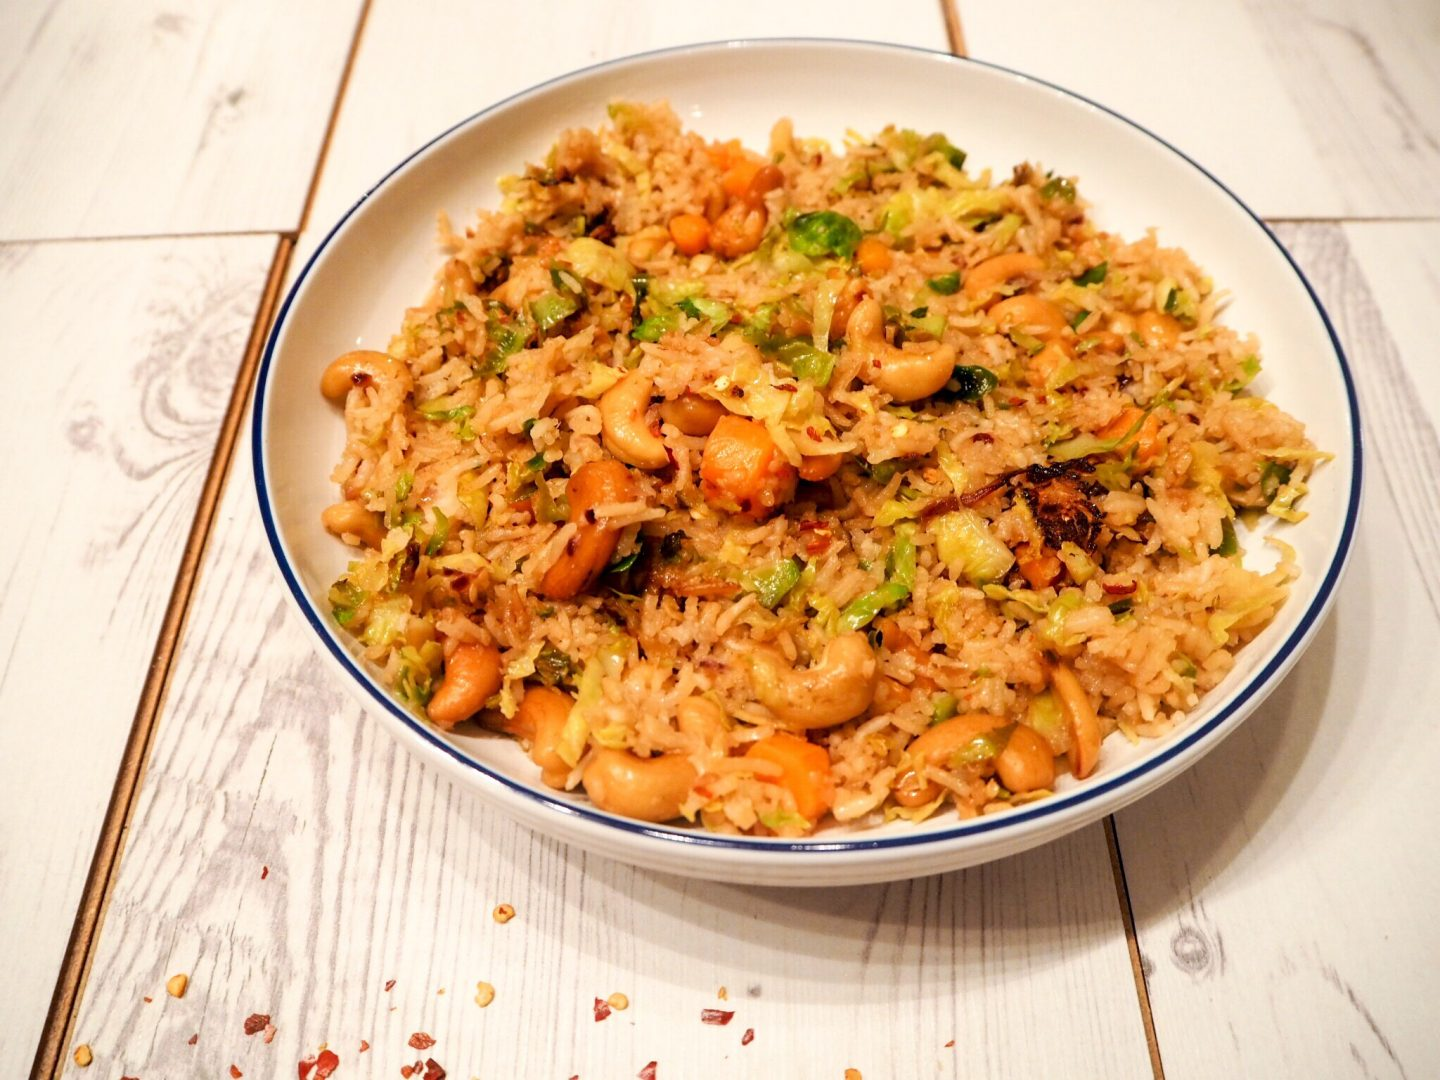 Seasonal Asian Vegetable Fried Rice